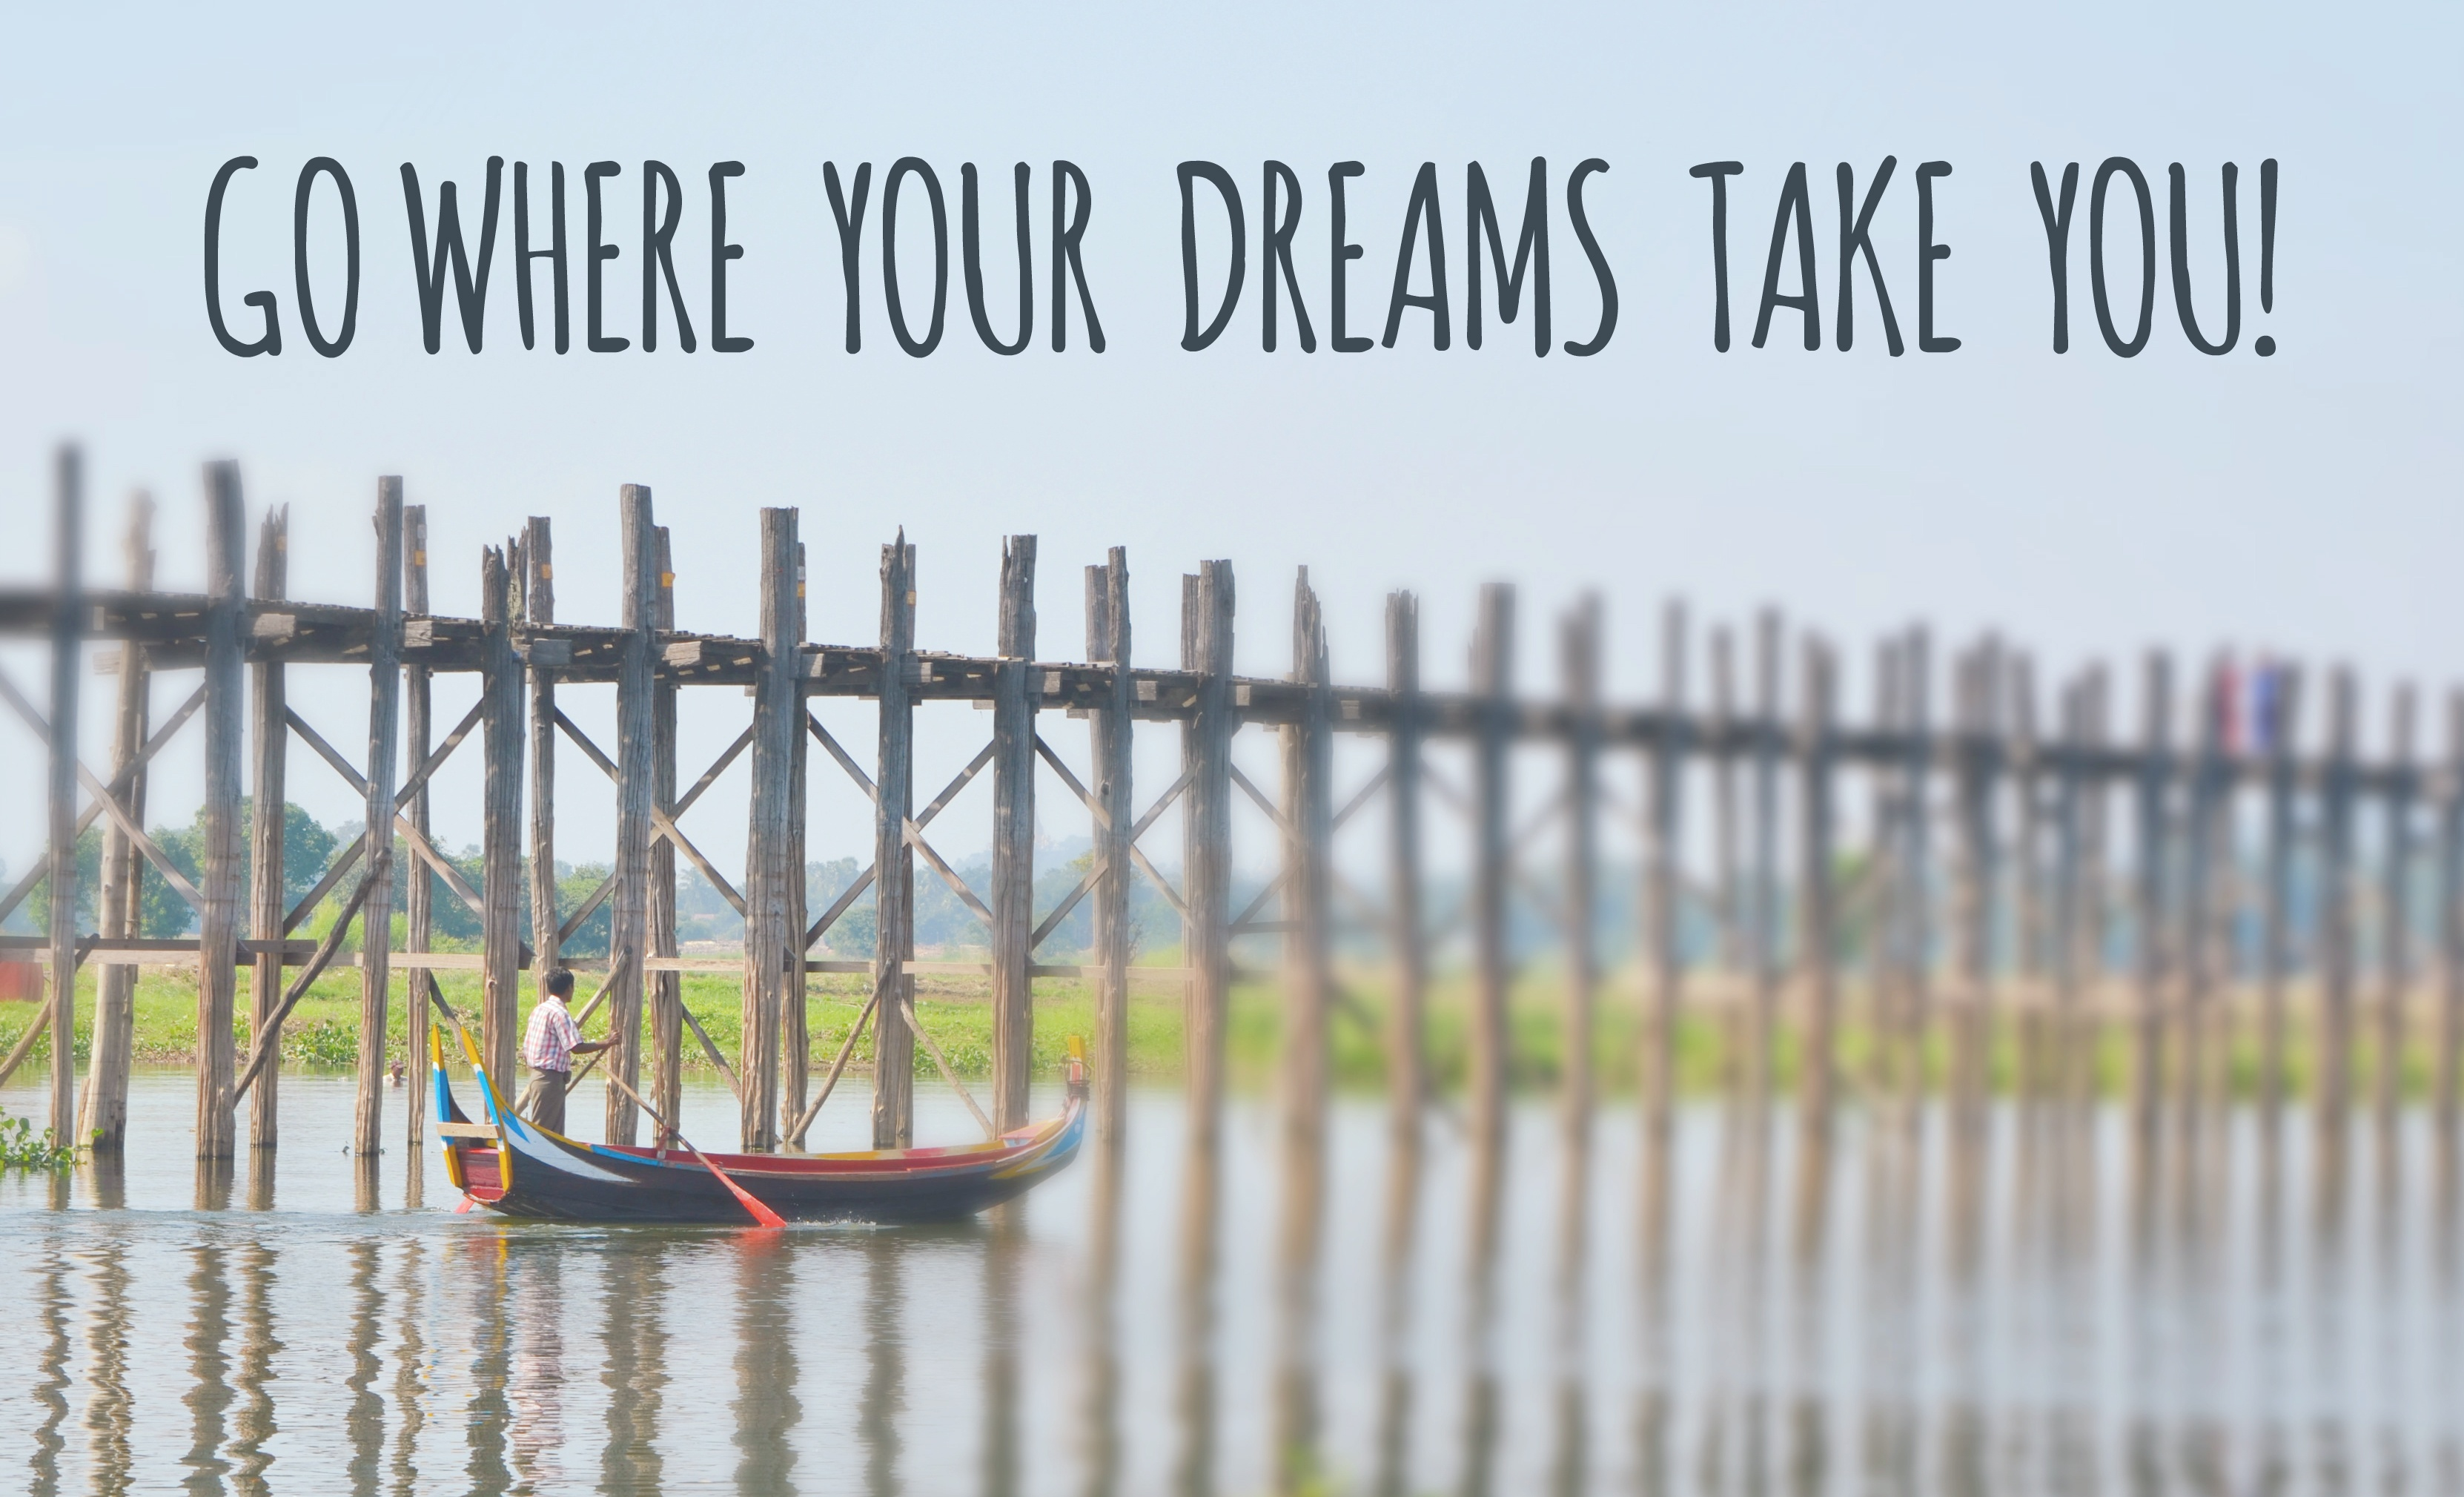 Go where your dreams take you.